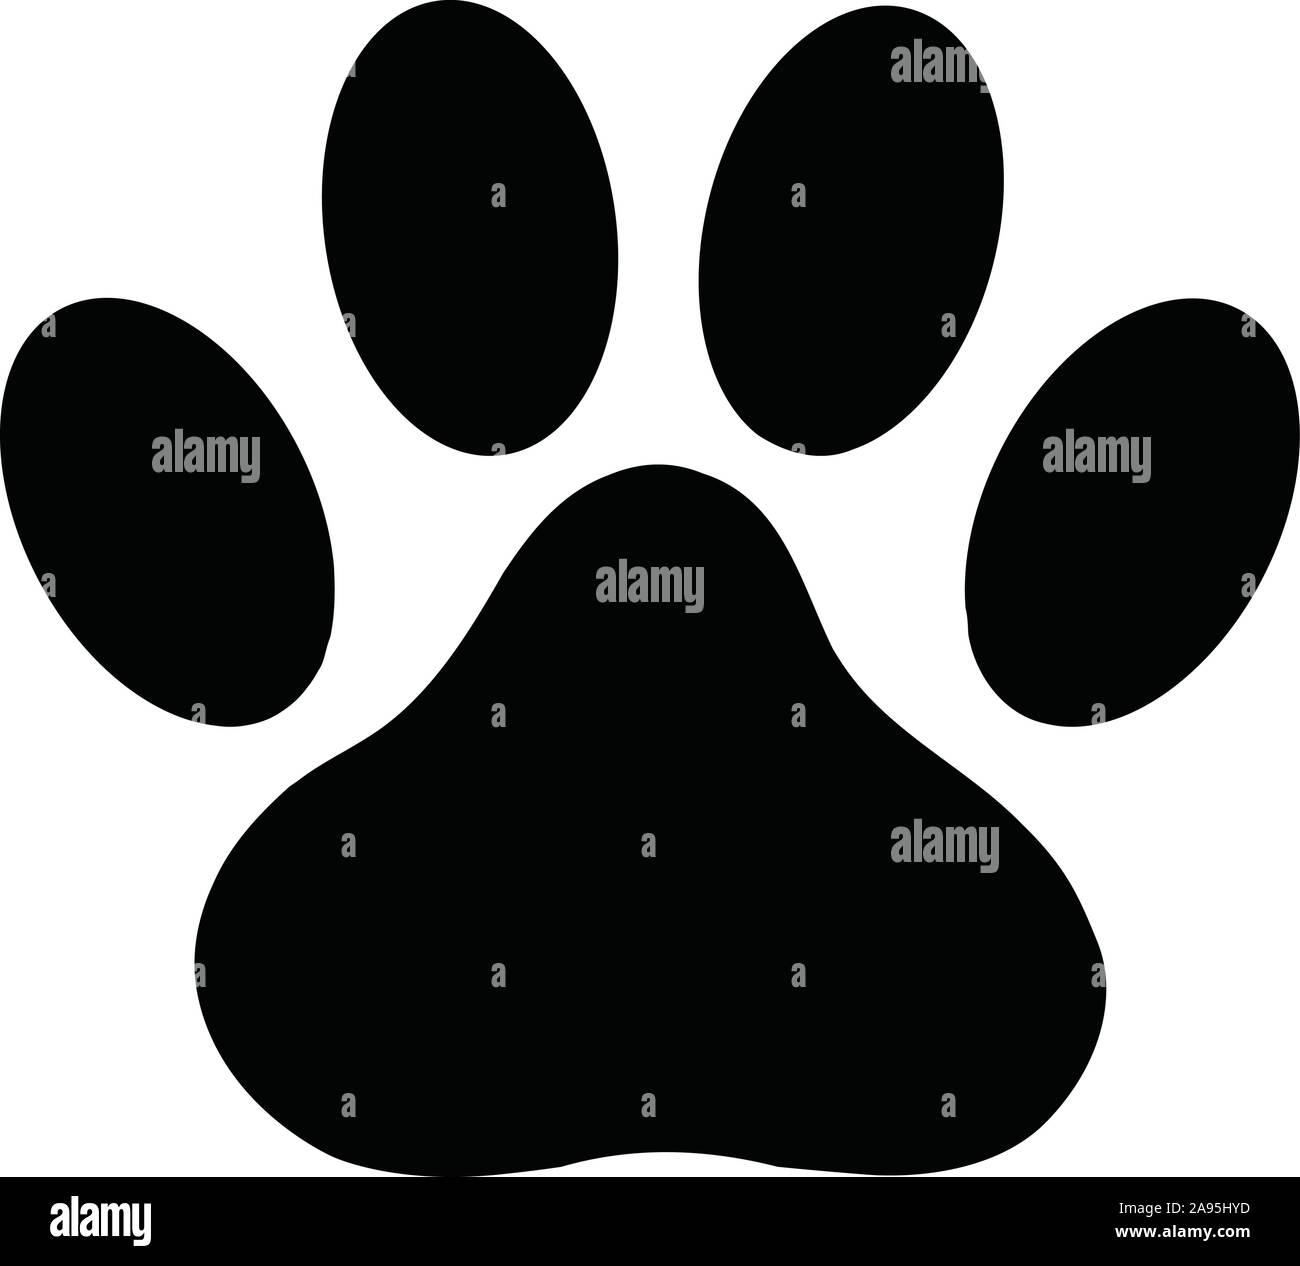 Black Paw Print High Resolution Stock Photography And Images Alamy Black silhouette of a paw print, isolated. https www alamy com black paw print icon on white background flat style dog or cat paw print icon for your web site design logo app ui animal track symbol foot and image332652753 html